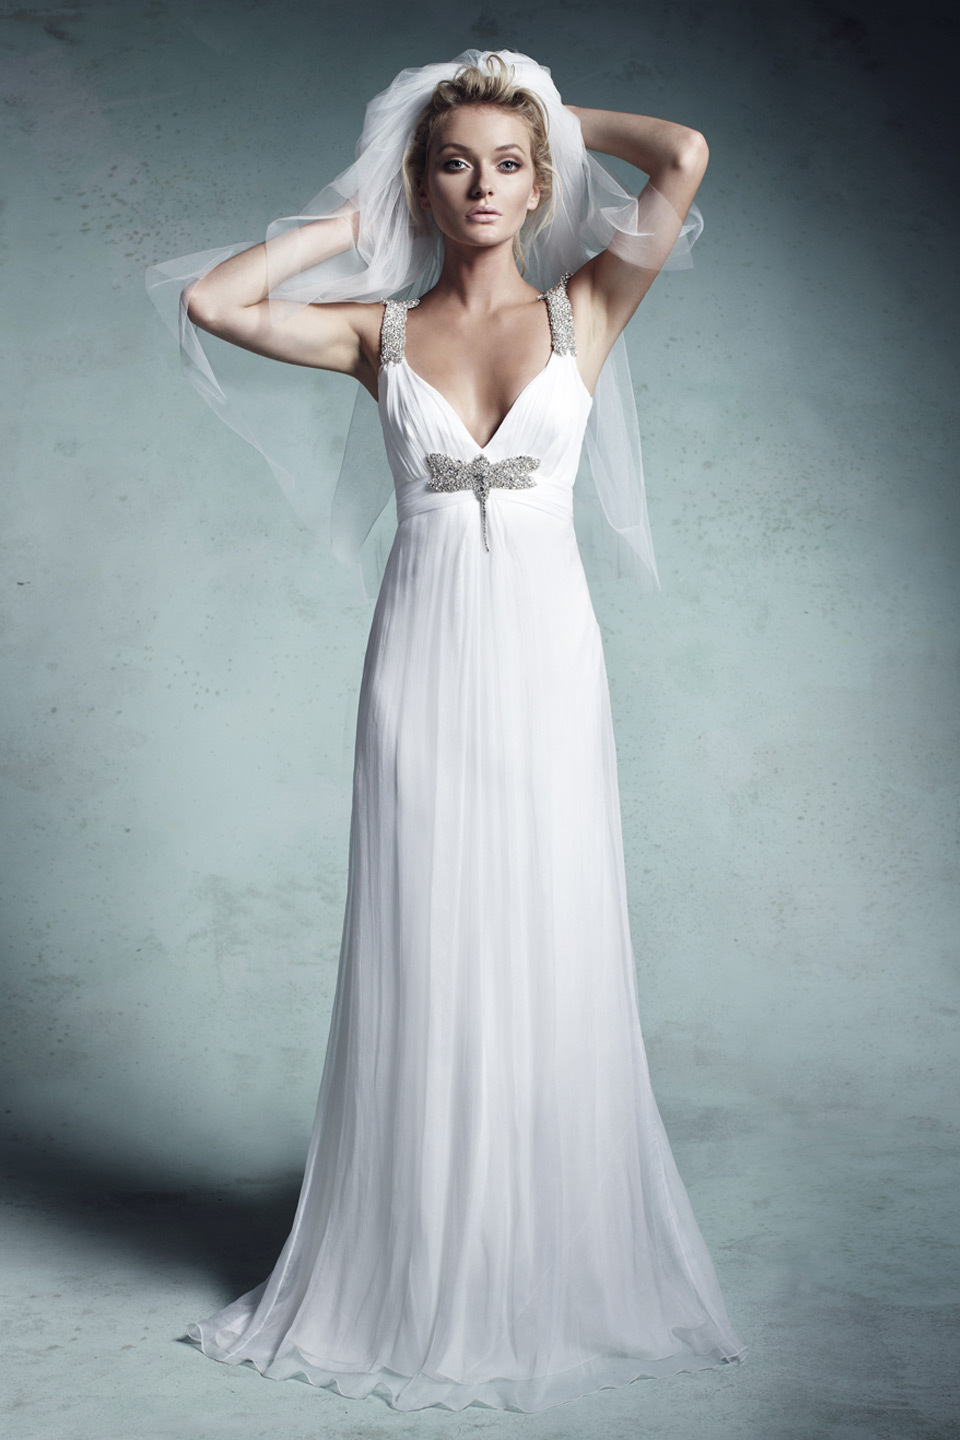 Wedding-dress-by-collette-dinnigan-2013-bridal-gowns-5.full